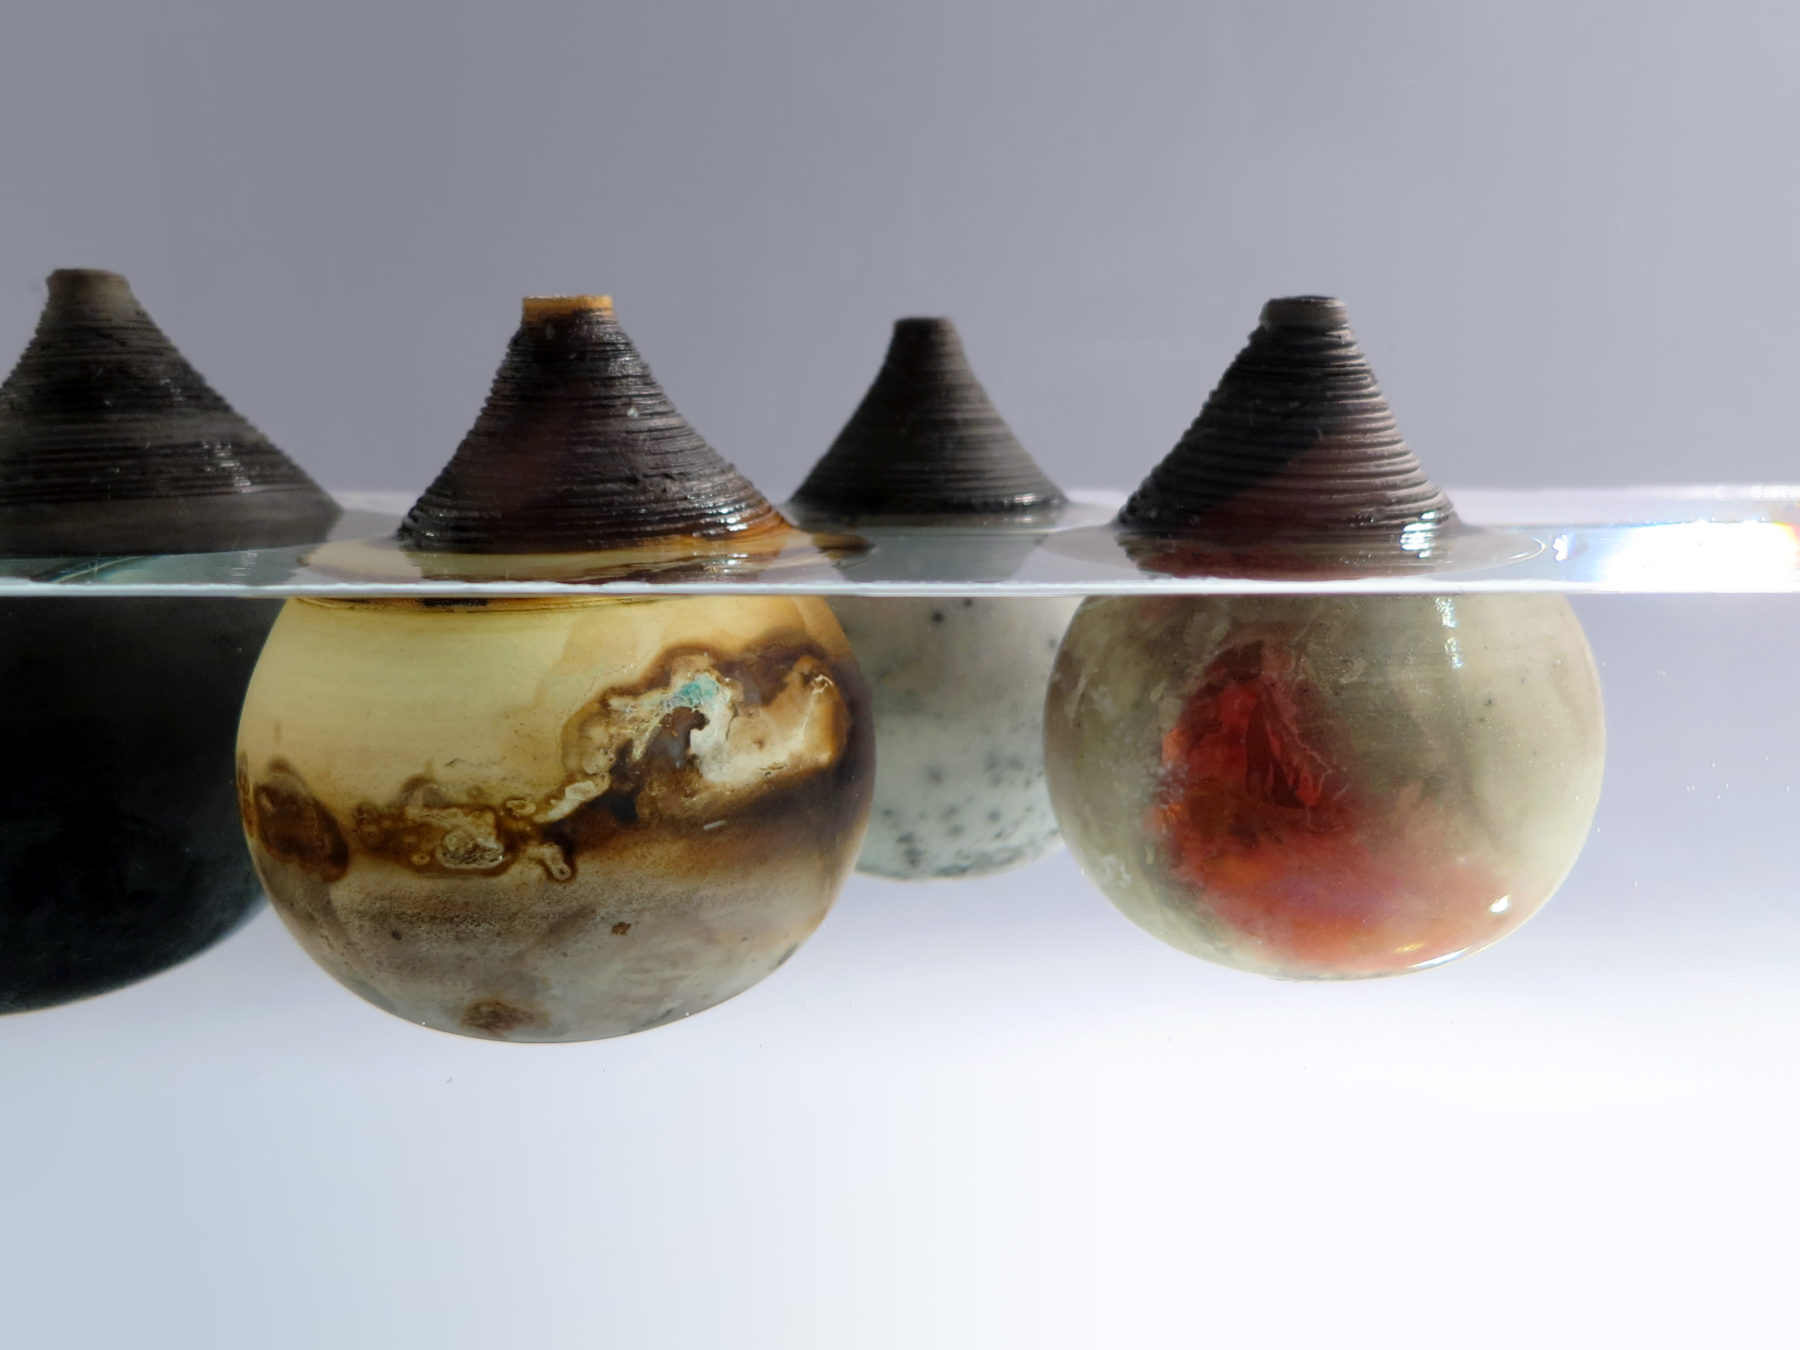 Under the Surface: Whispering Globes - Ildikó Károlyi